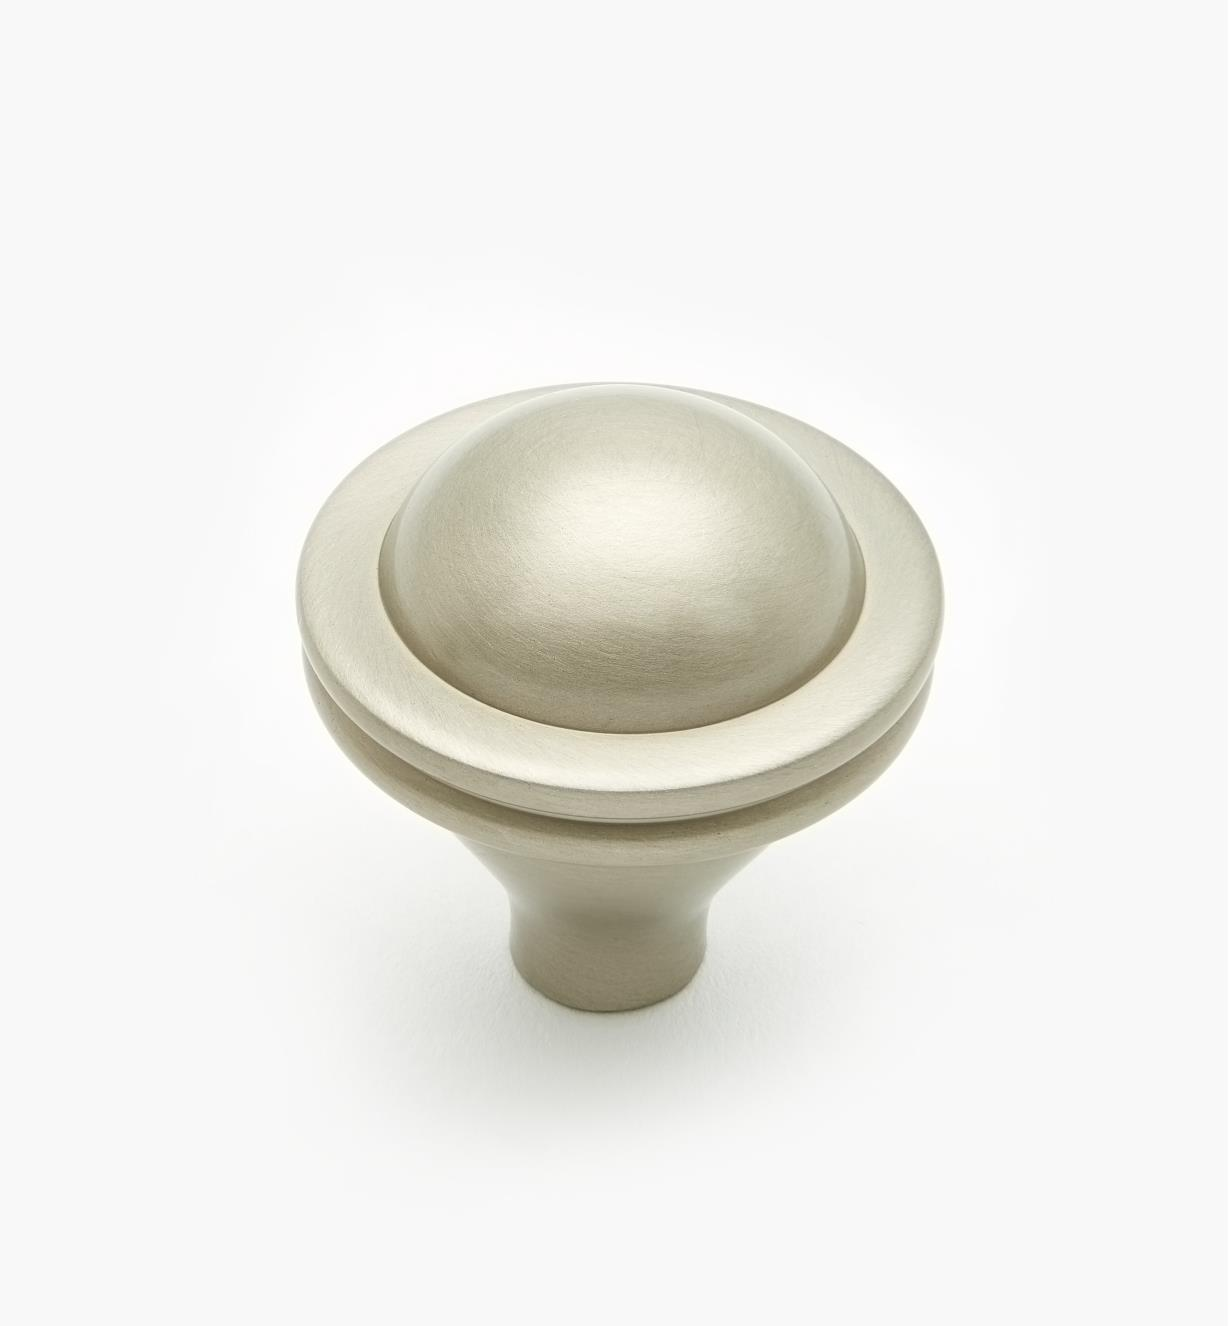 02W4015 - Satin Nickel Knob